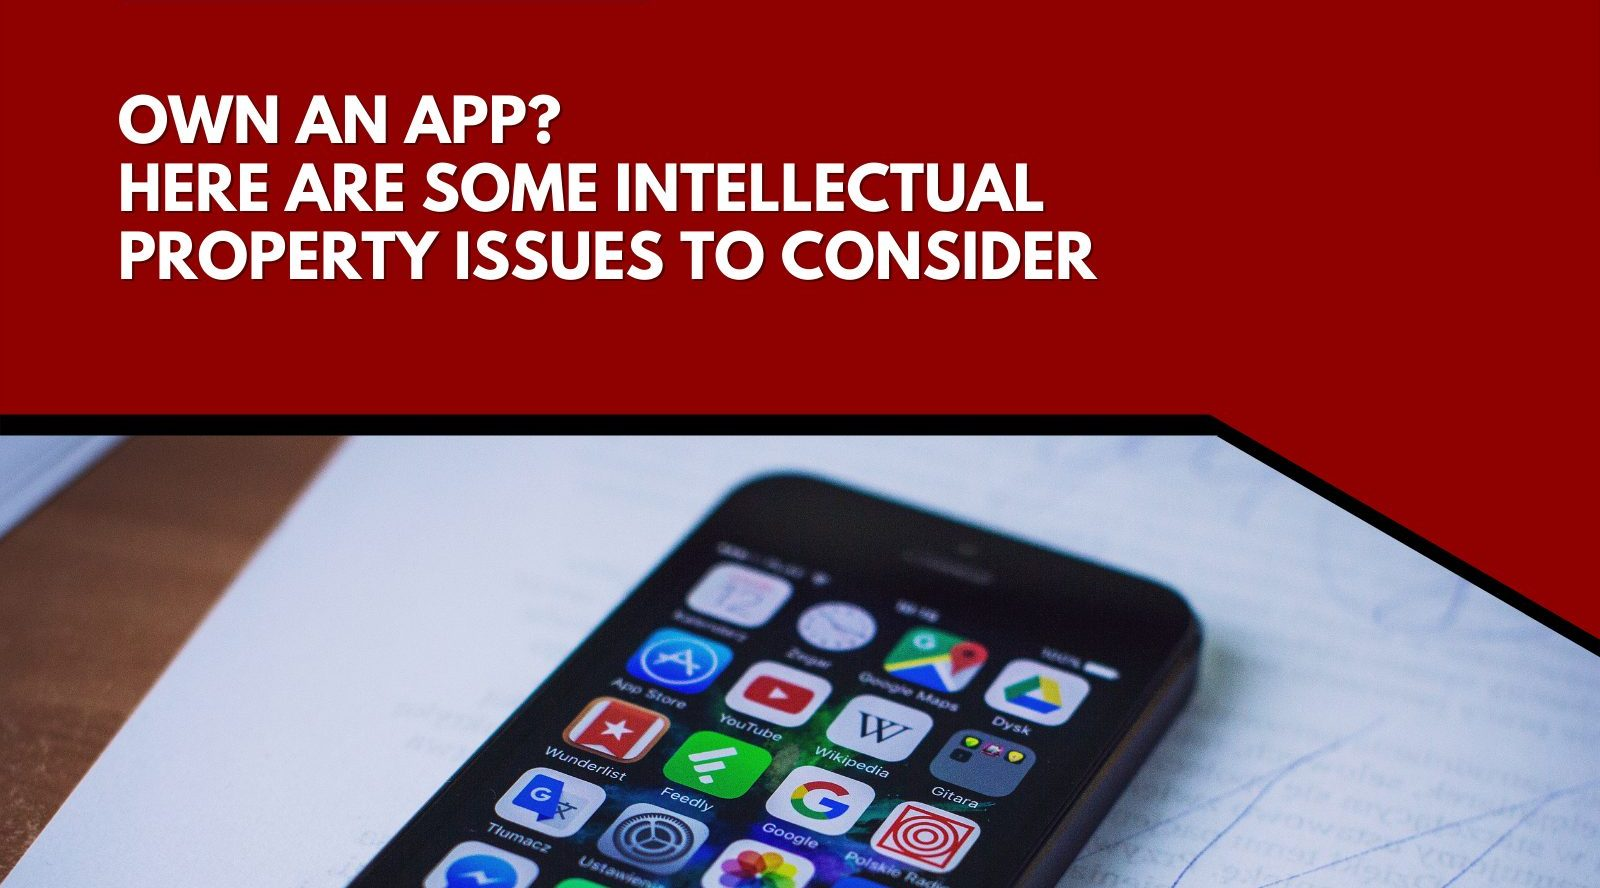 Own an App? Here are some Intellectual Property issues to consider